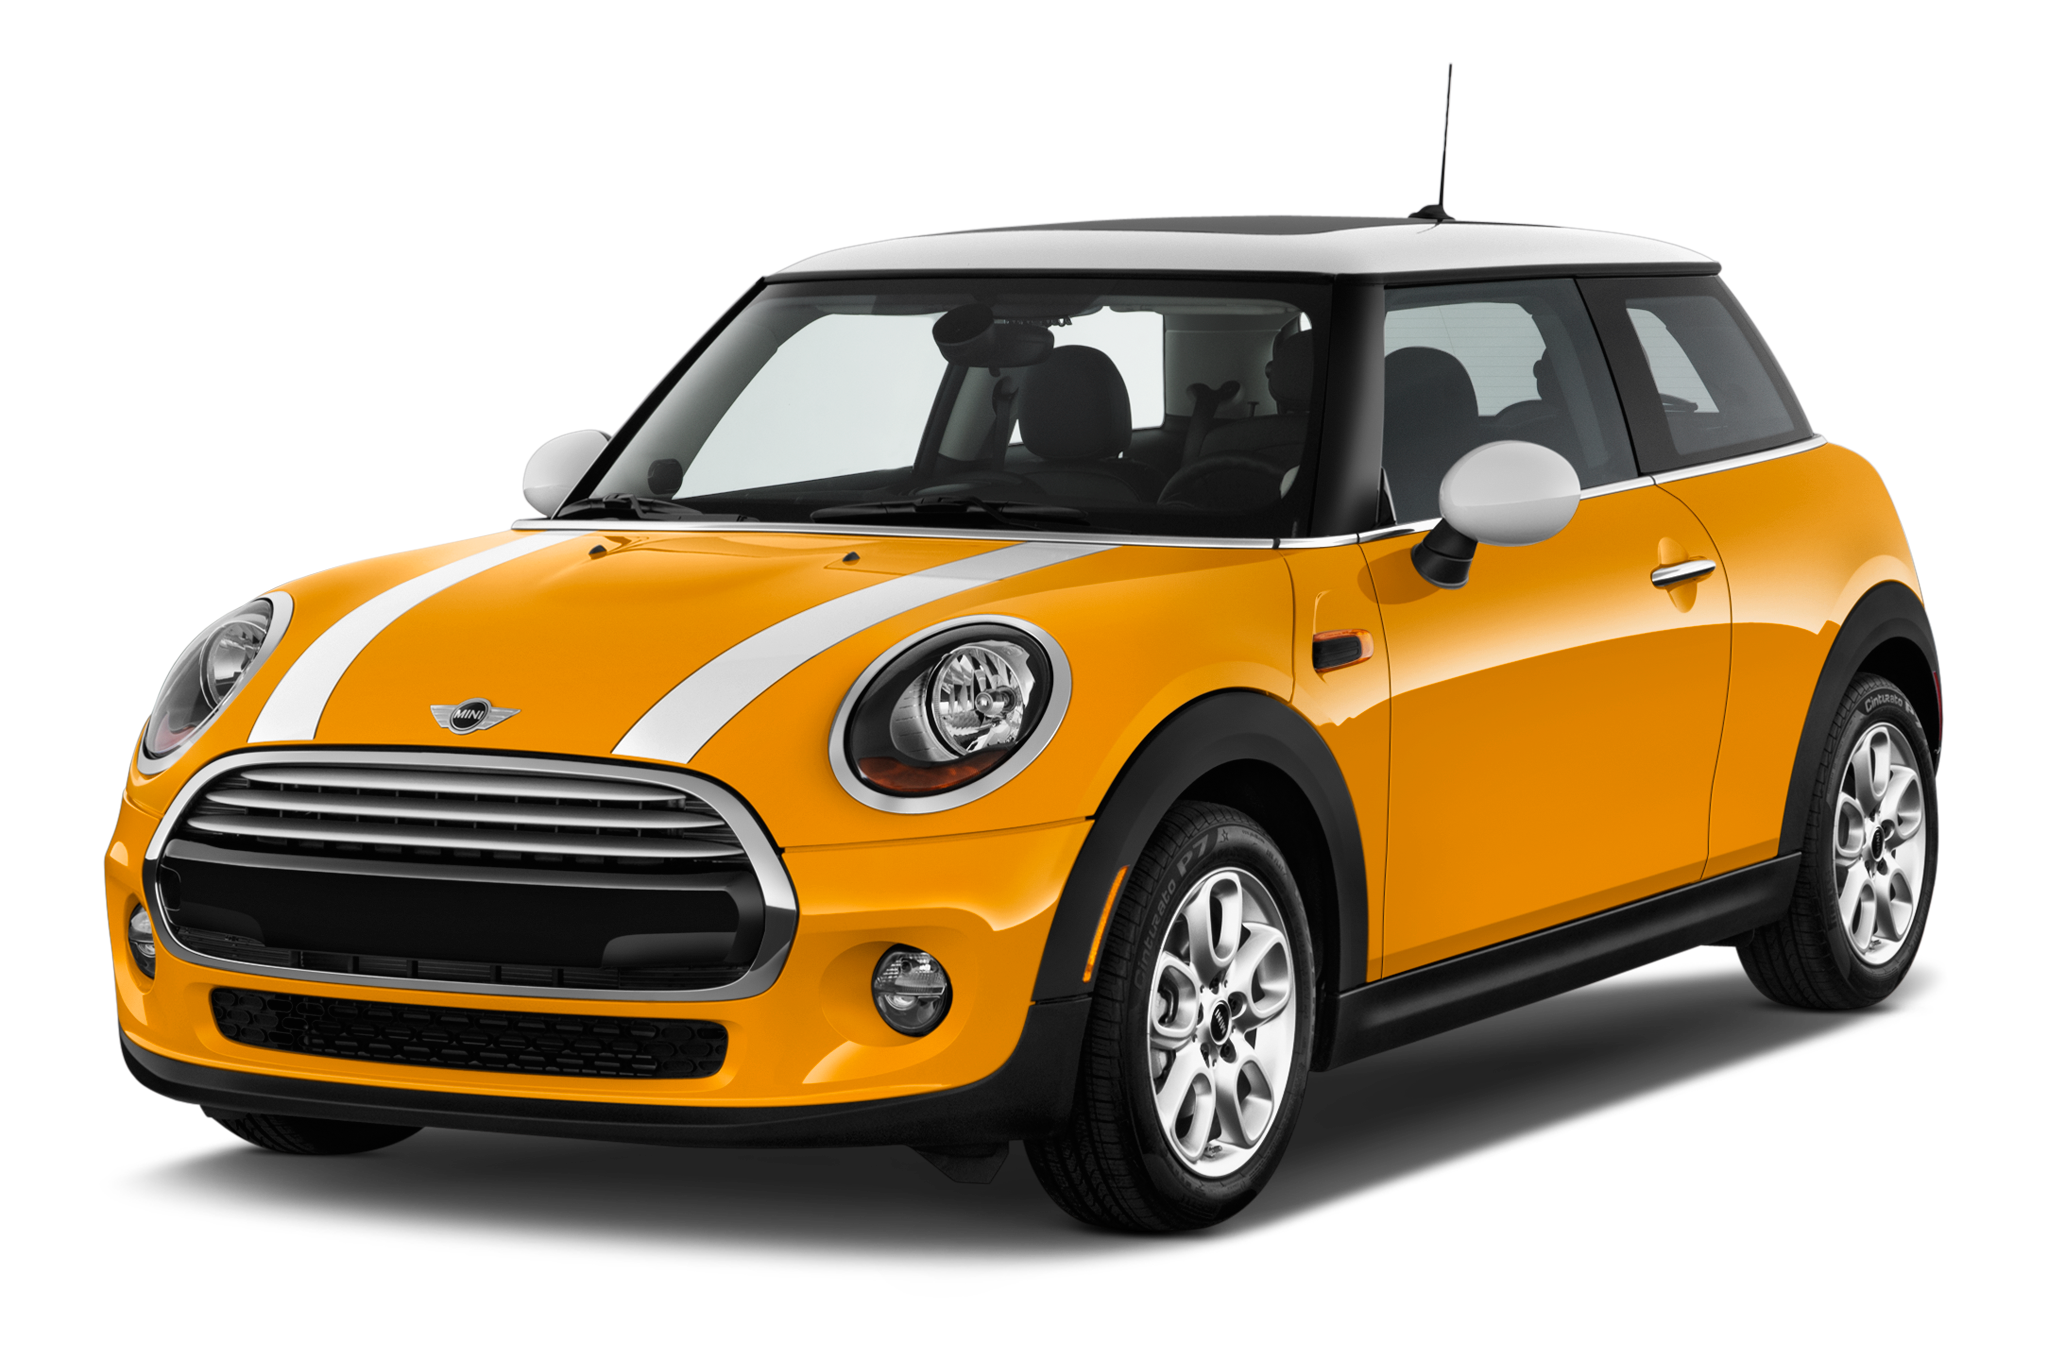 Clipart car yellow. Mini cooper free on